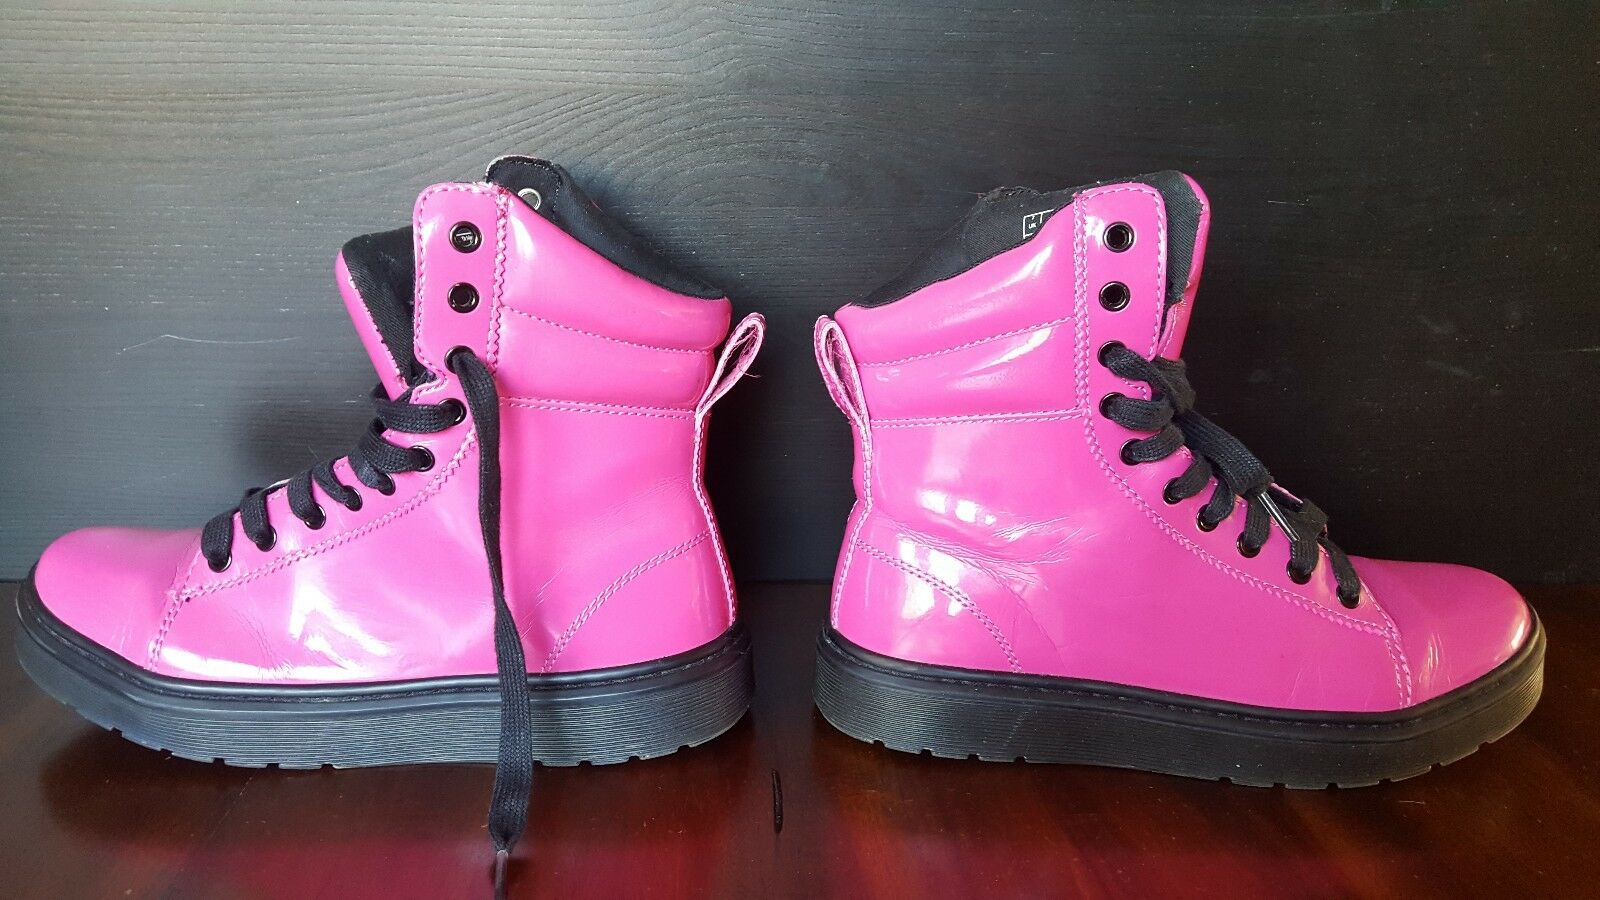 DR. MARTENS MIX IN HOT PINK PATENT LAMPER Womens Size 9US , 7EU